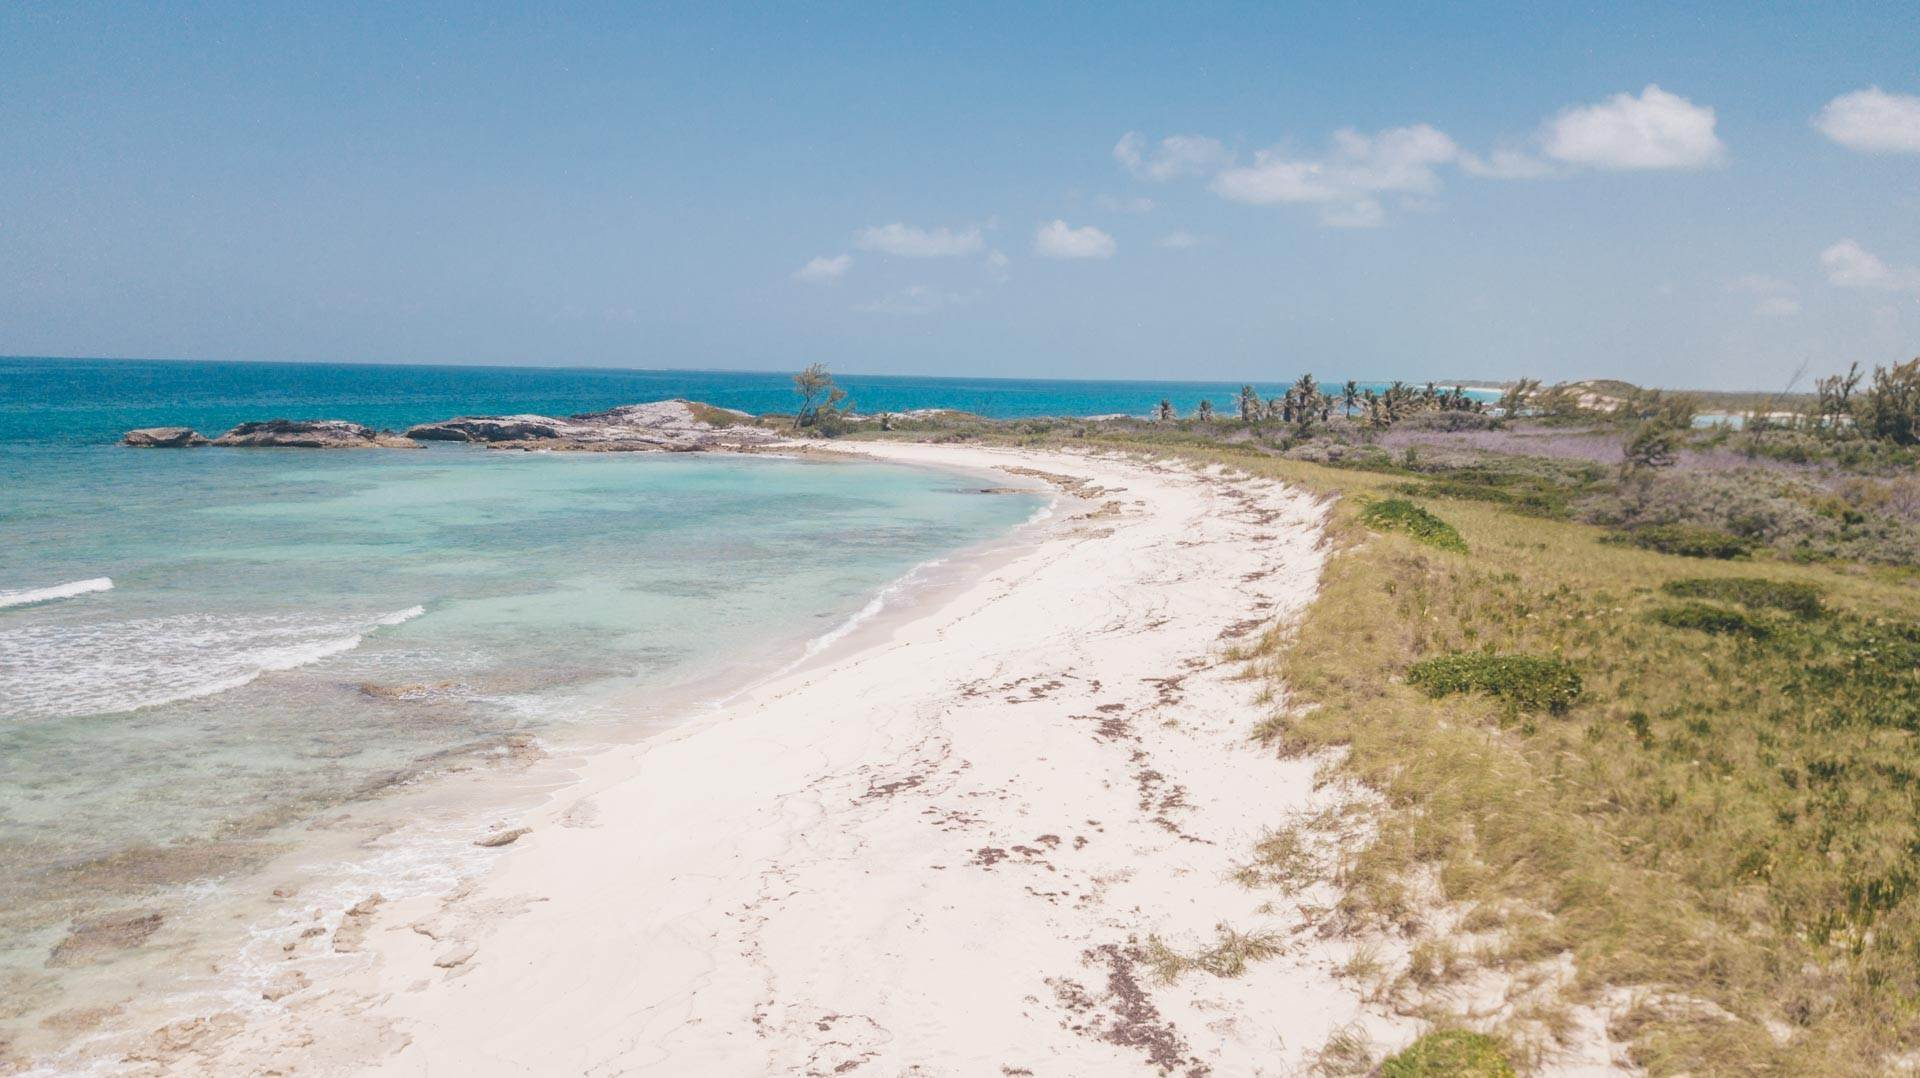 Private Islands for Sale at Hawk's Nest Cay, Great Harbour Cay Great Harbour Cay, Berry Islands, Bahamas